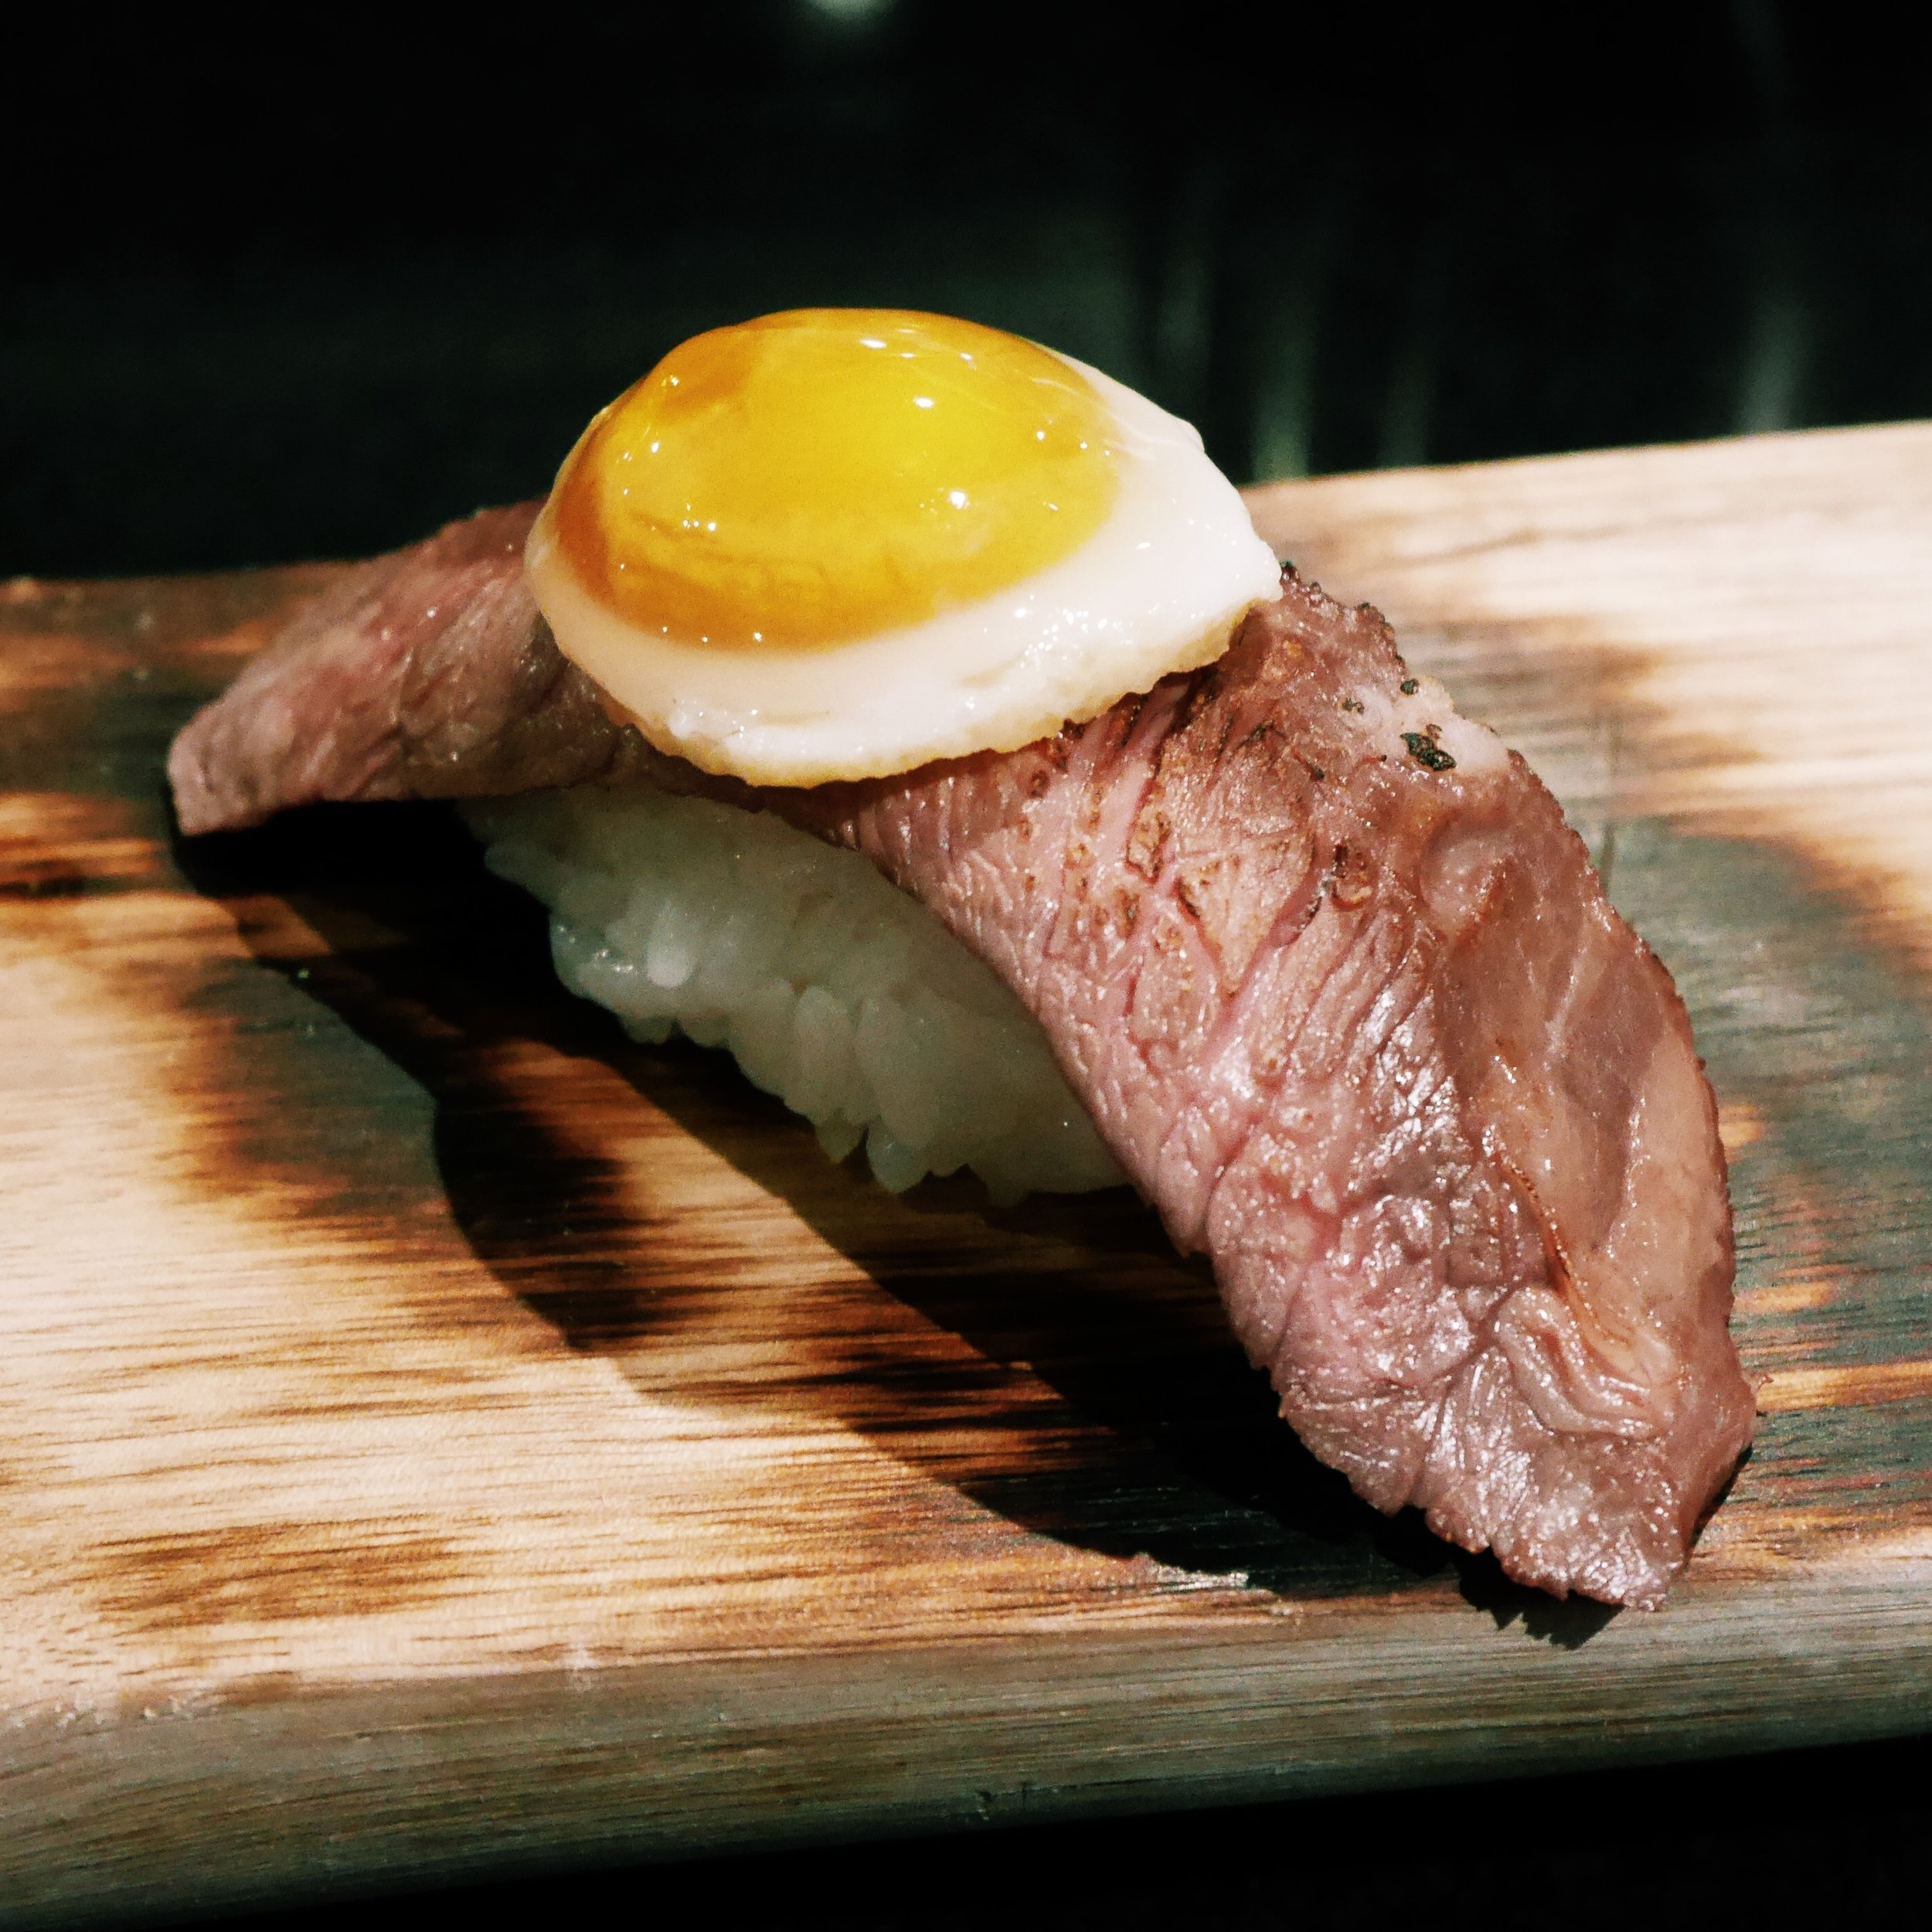 Sushi earth - steak and egg